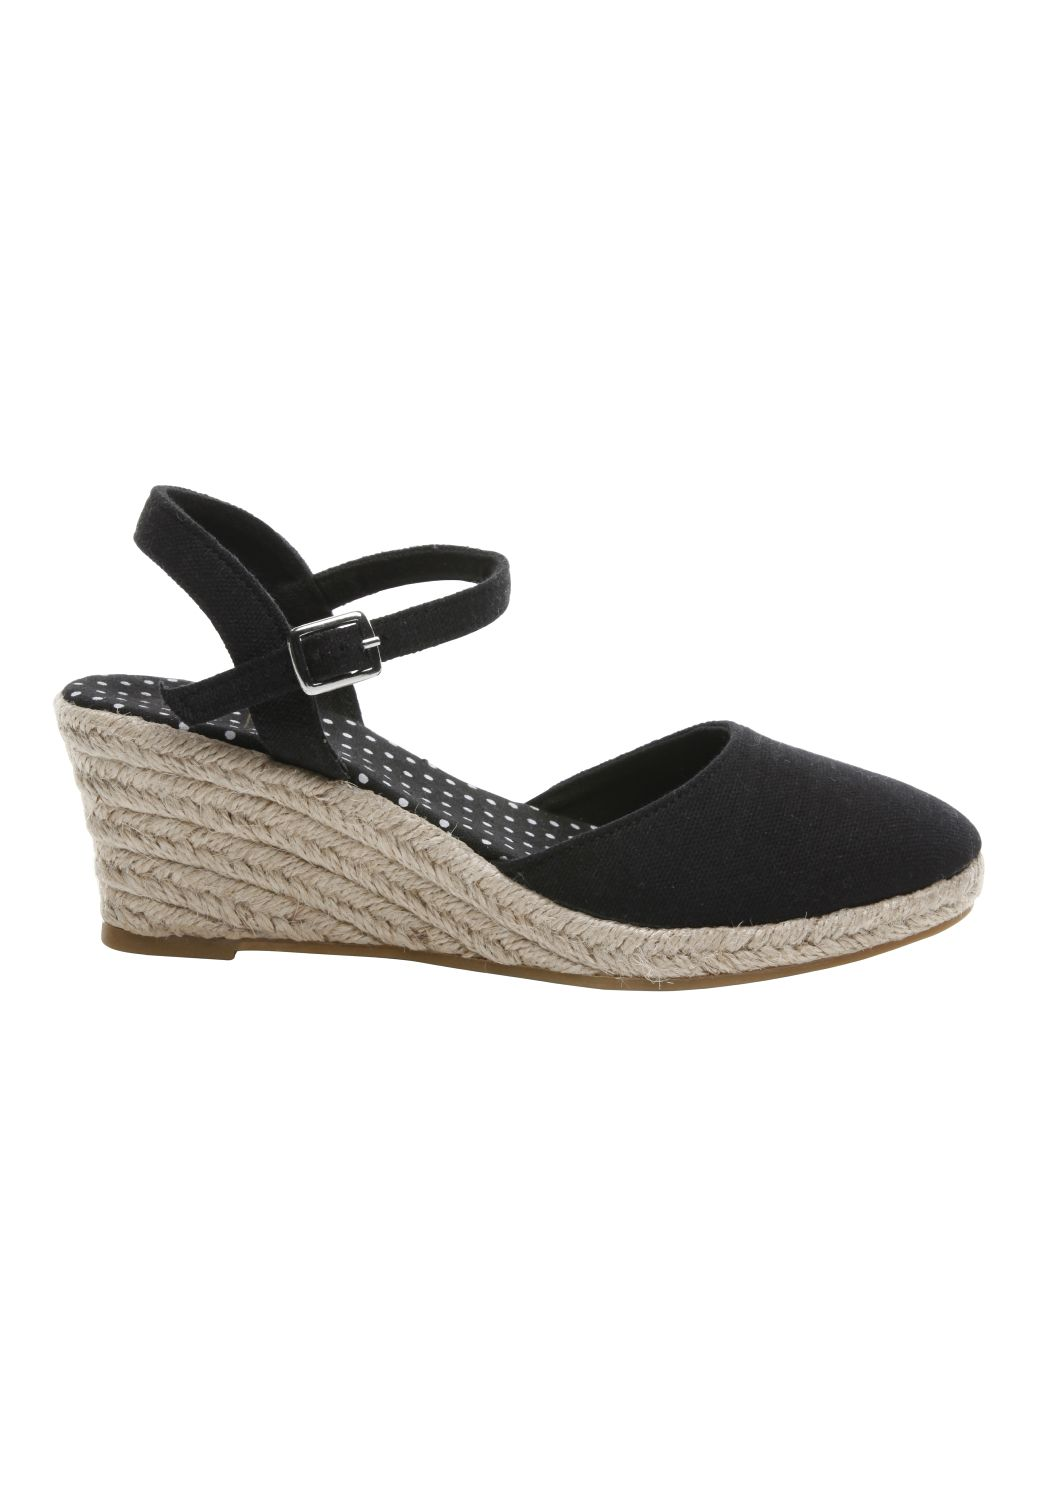 clothing at tesco f espadrille closed toe wedge sandal sandals